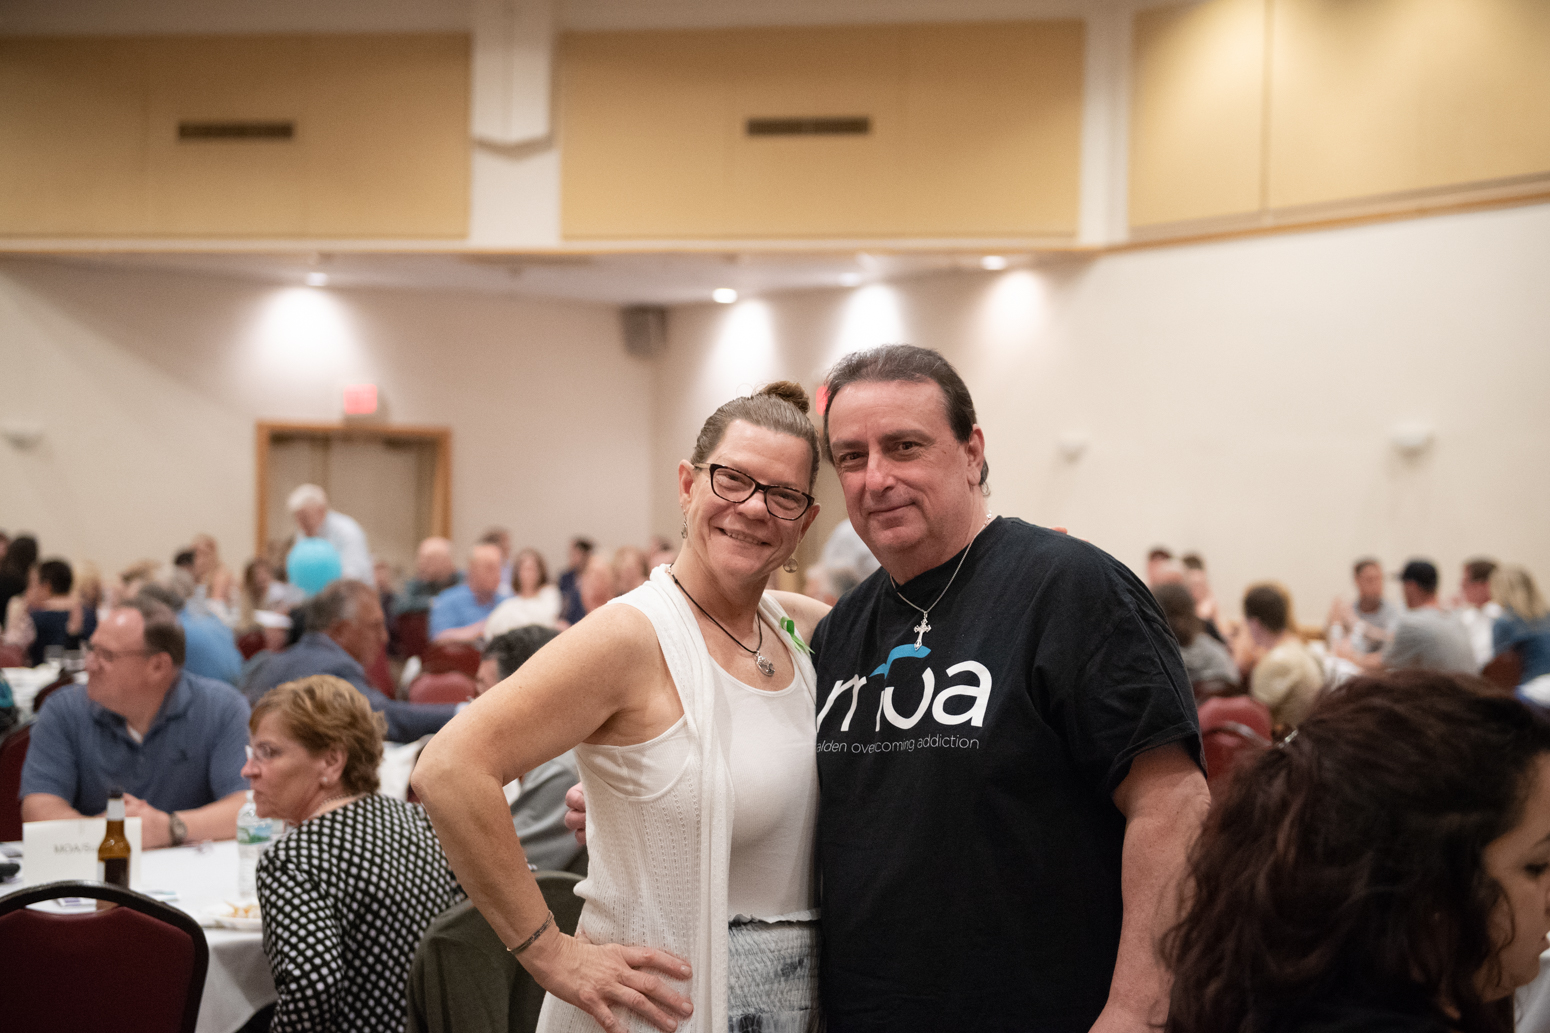 2nd-annual-togetherwecan-moa-comedy-night-fundraiser_27023875887_o.jpg